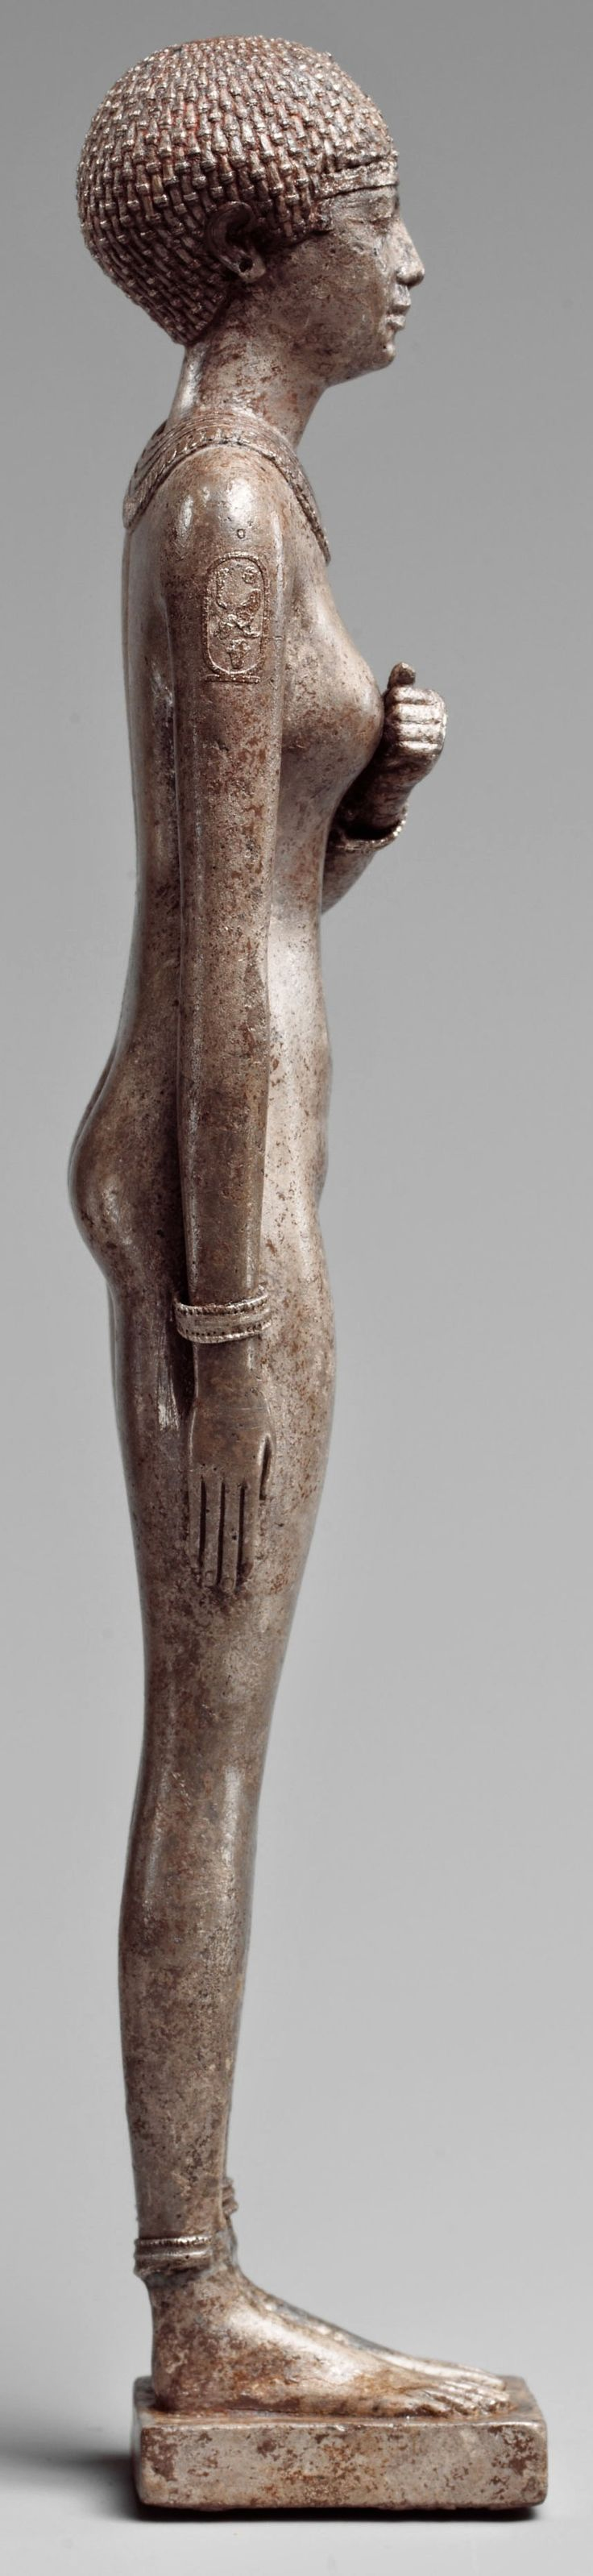 Statue-of-a-Royal-Woman-with-the-Cartouches-of-Necho-II-on-her-Arms---Egypt-610-595-BC-3.jpg (858×3726)